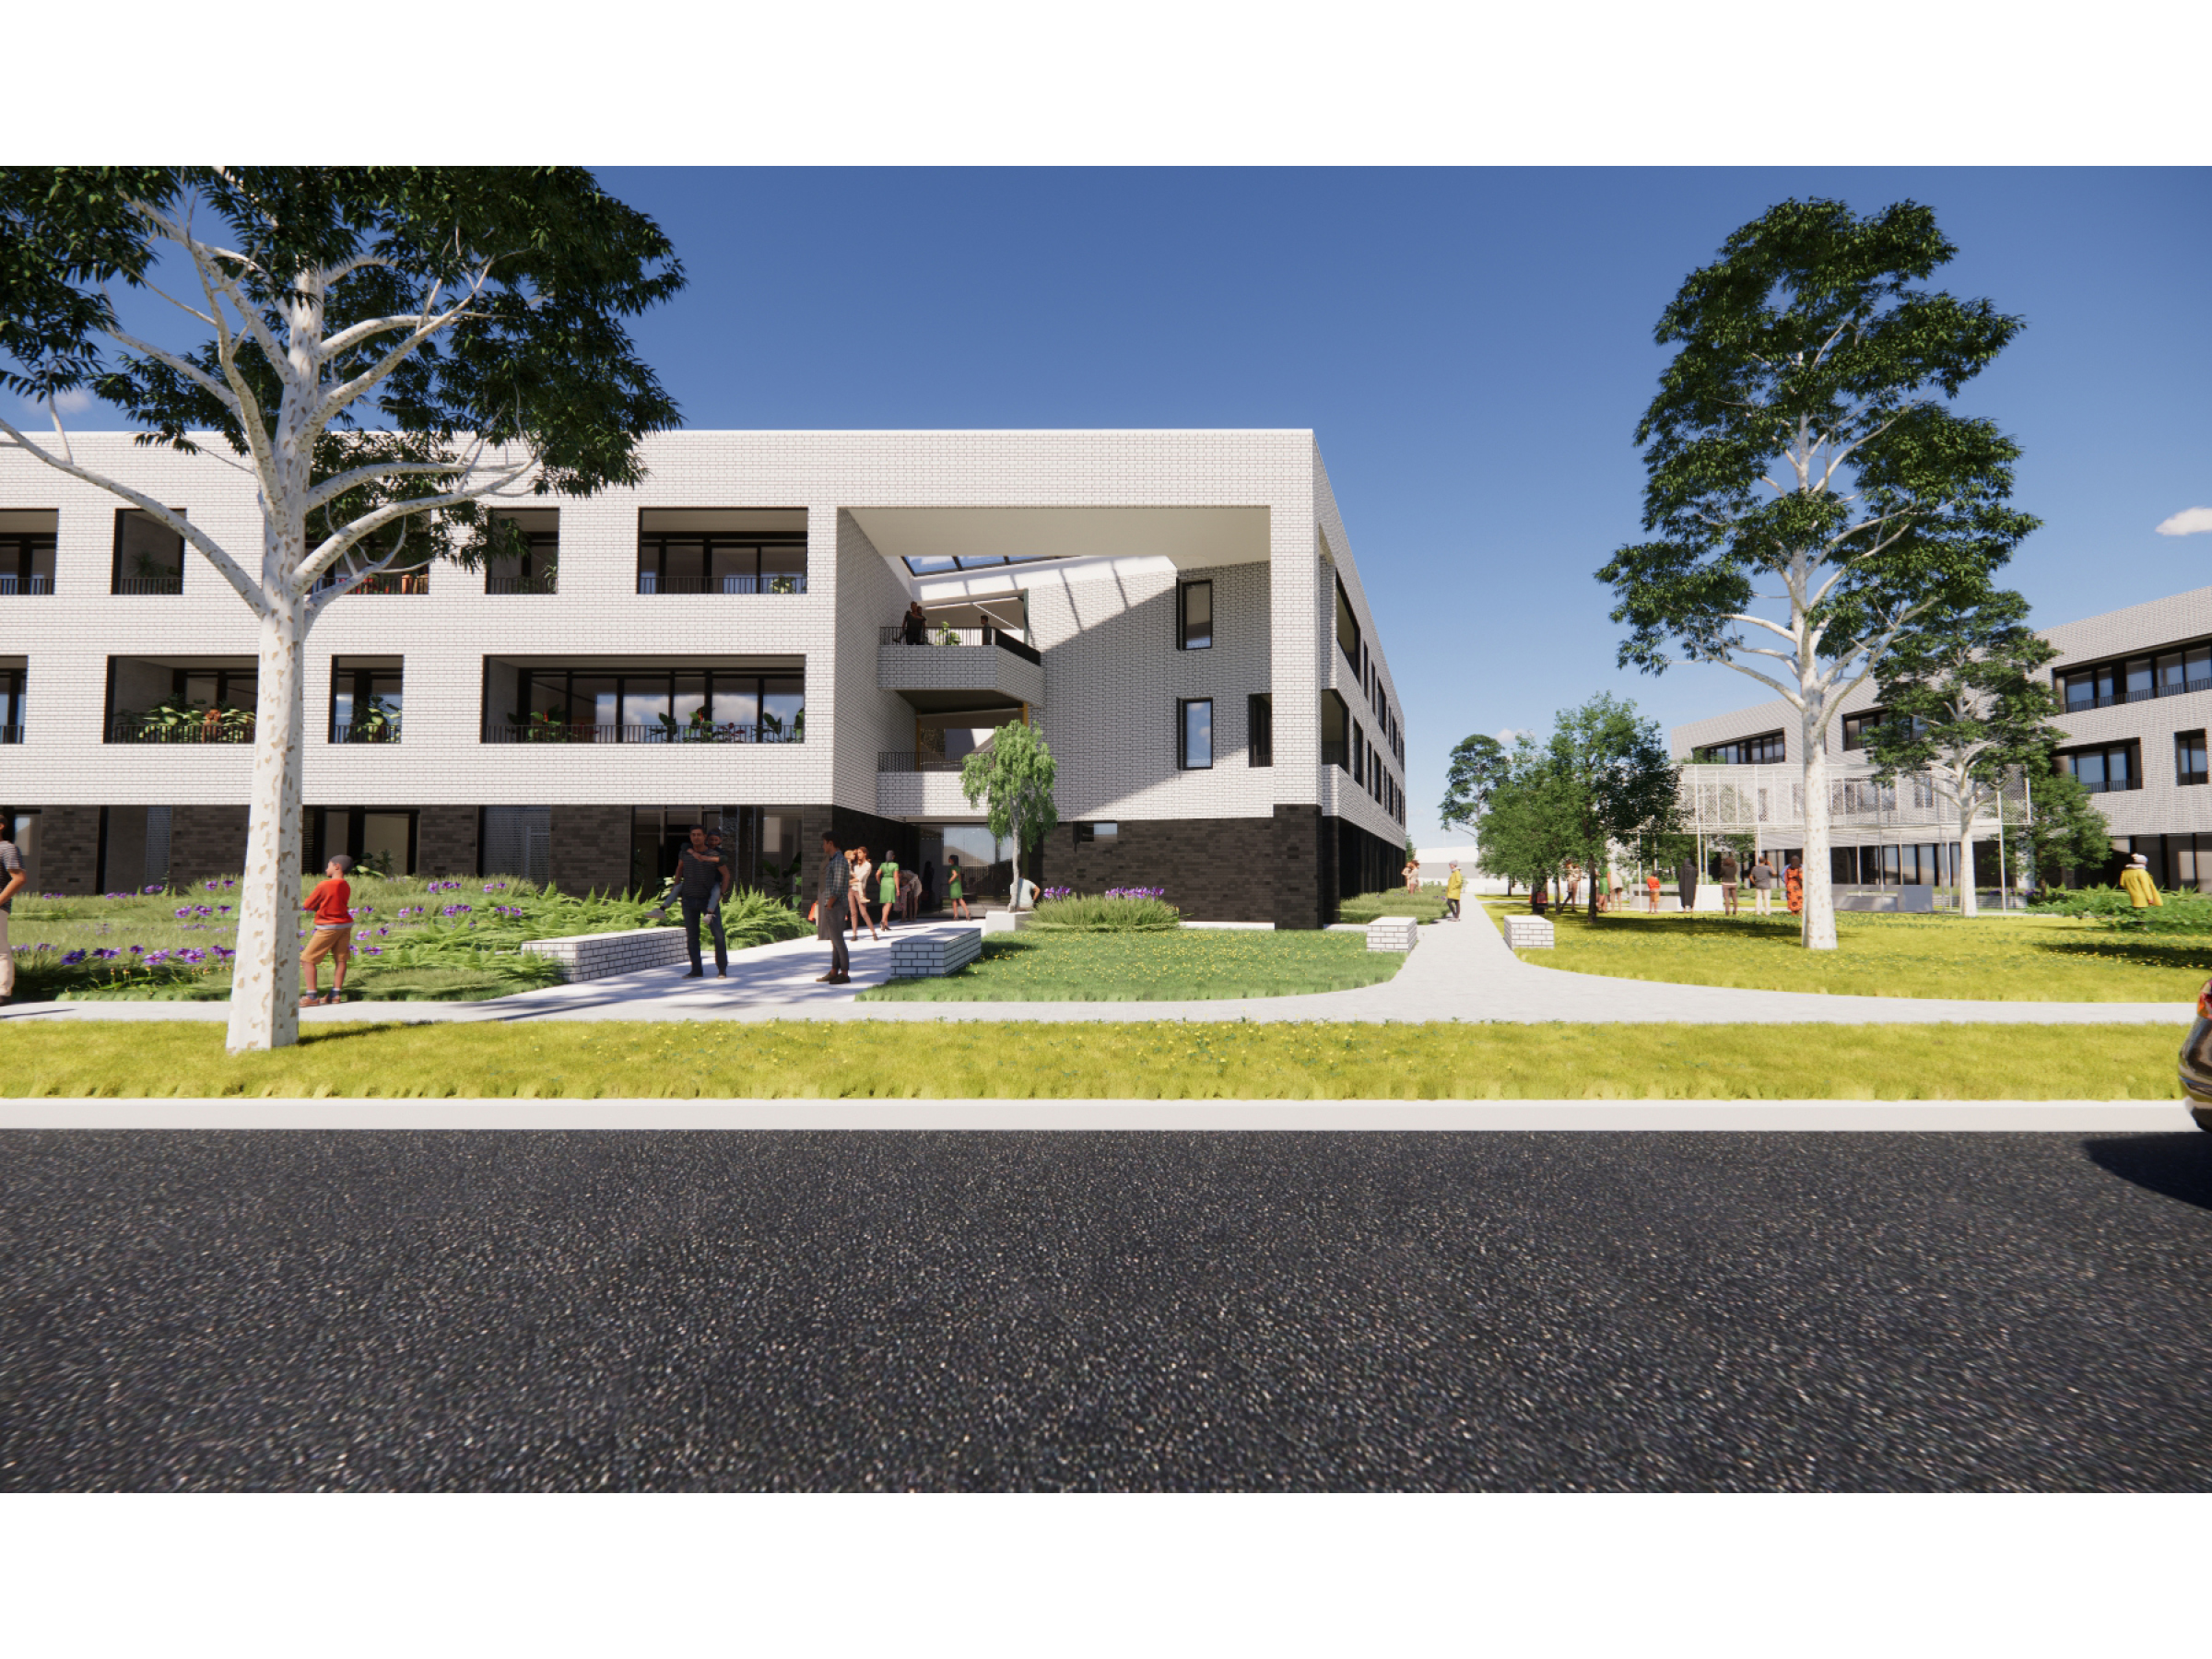 Artist impression looking at buildings TA2 and TA3 on the new development as seen from Tarakan Street